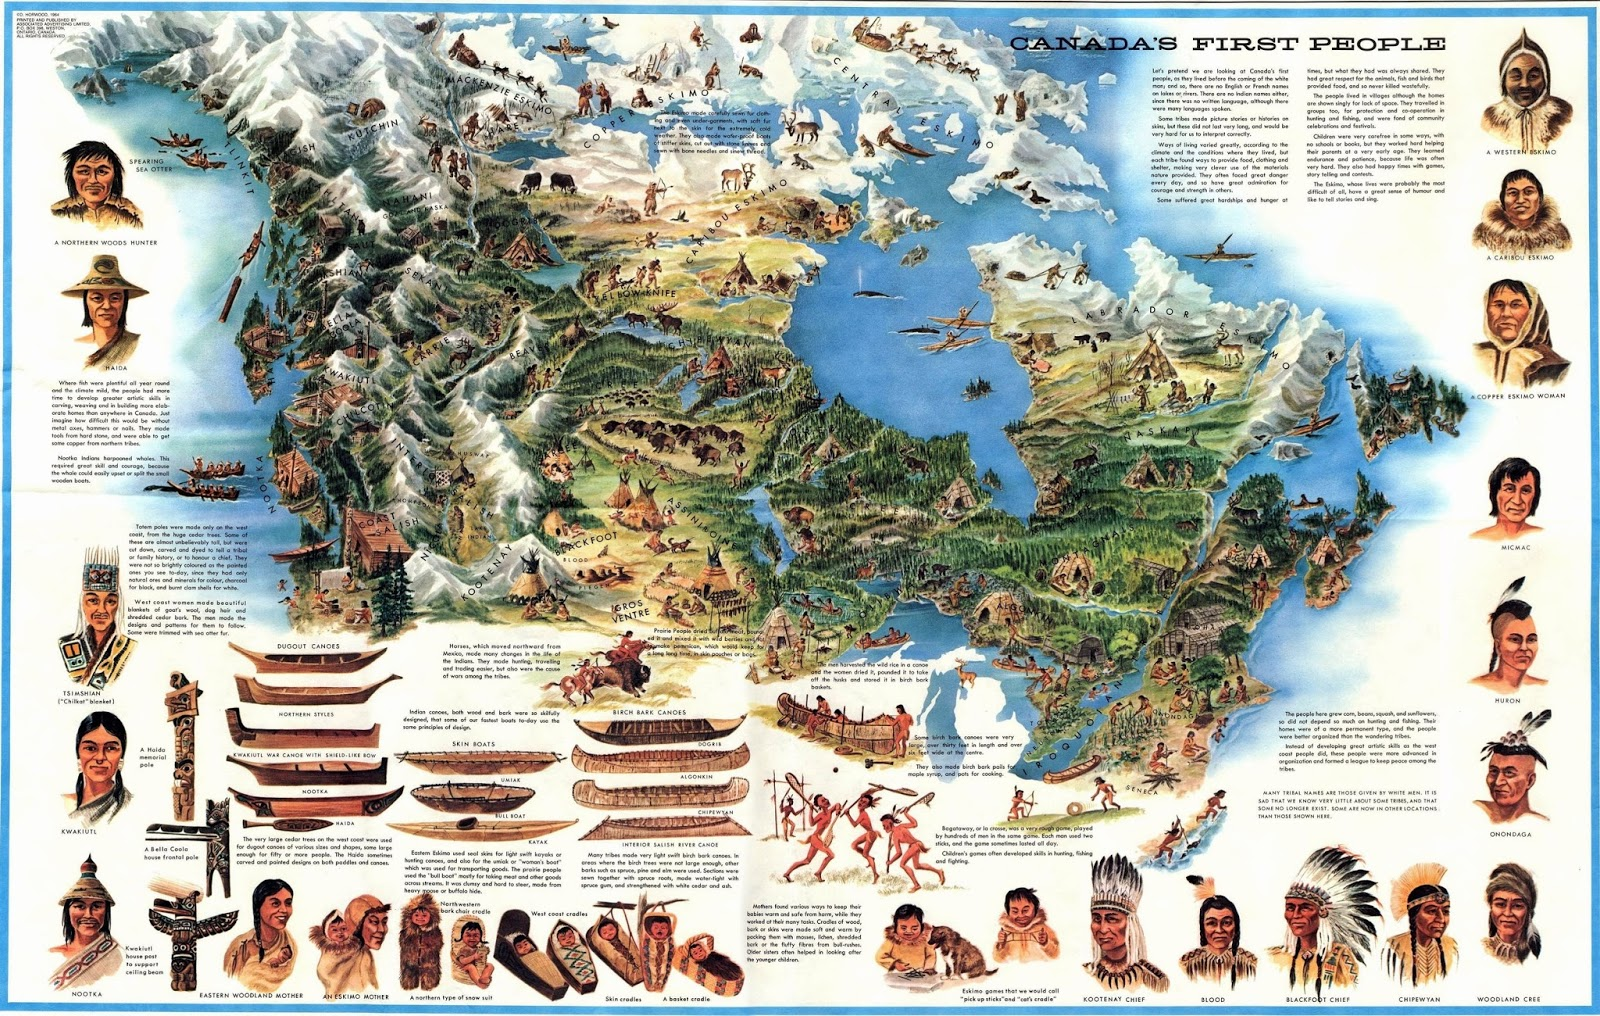 Together, British troops, First Nations, and Canadian volunteers defeated  an American invasion in 1812-14